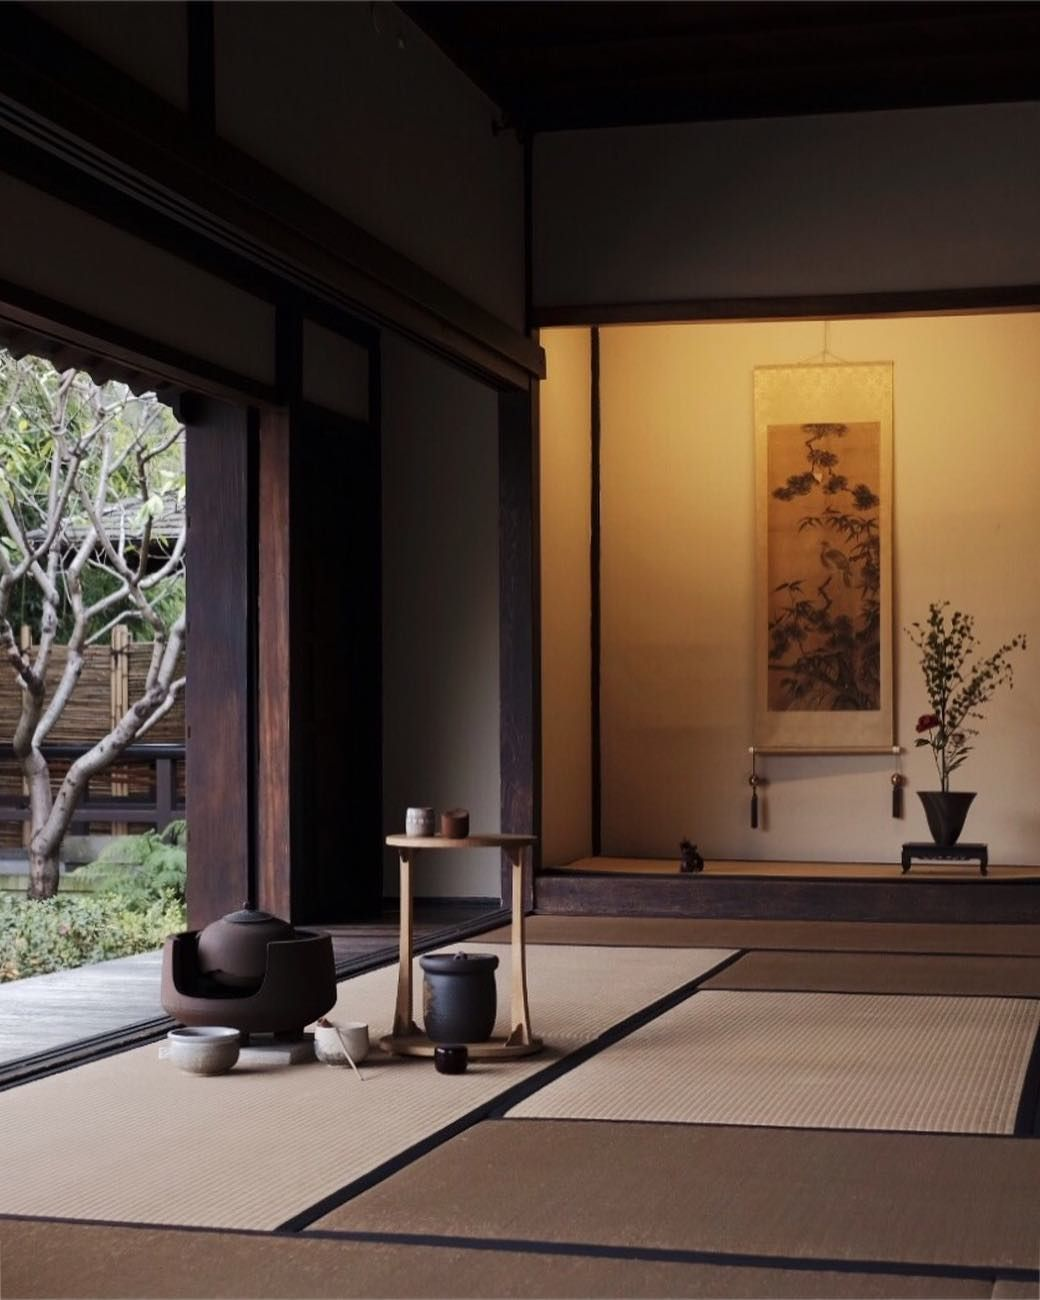 Jessica Comingore Donais On Instagram A Return To One Of My Favorite Places Before The Yea Modern Japanese Interior Japanese Living Room Decor Japanese Decor